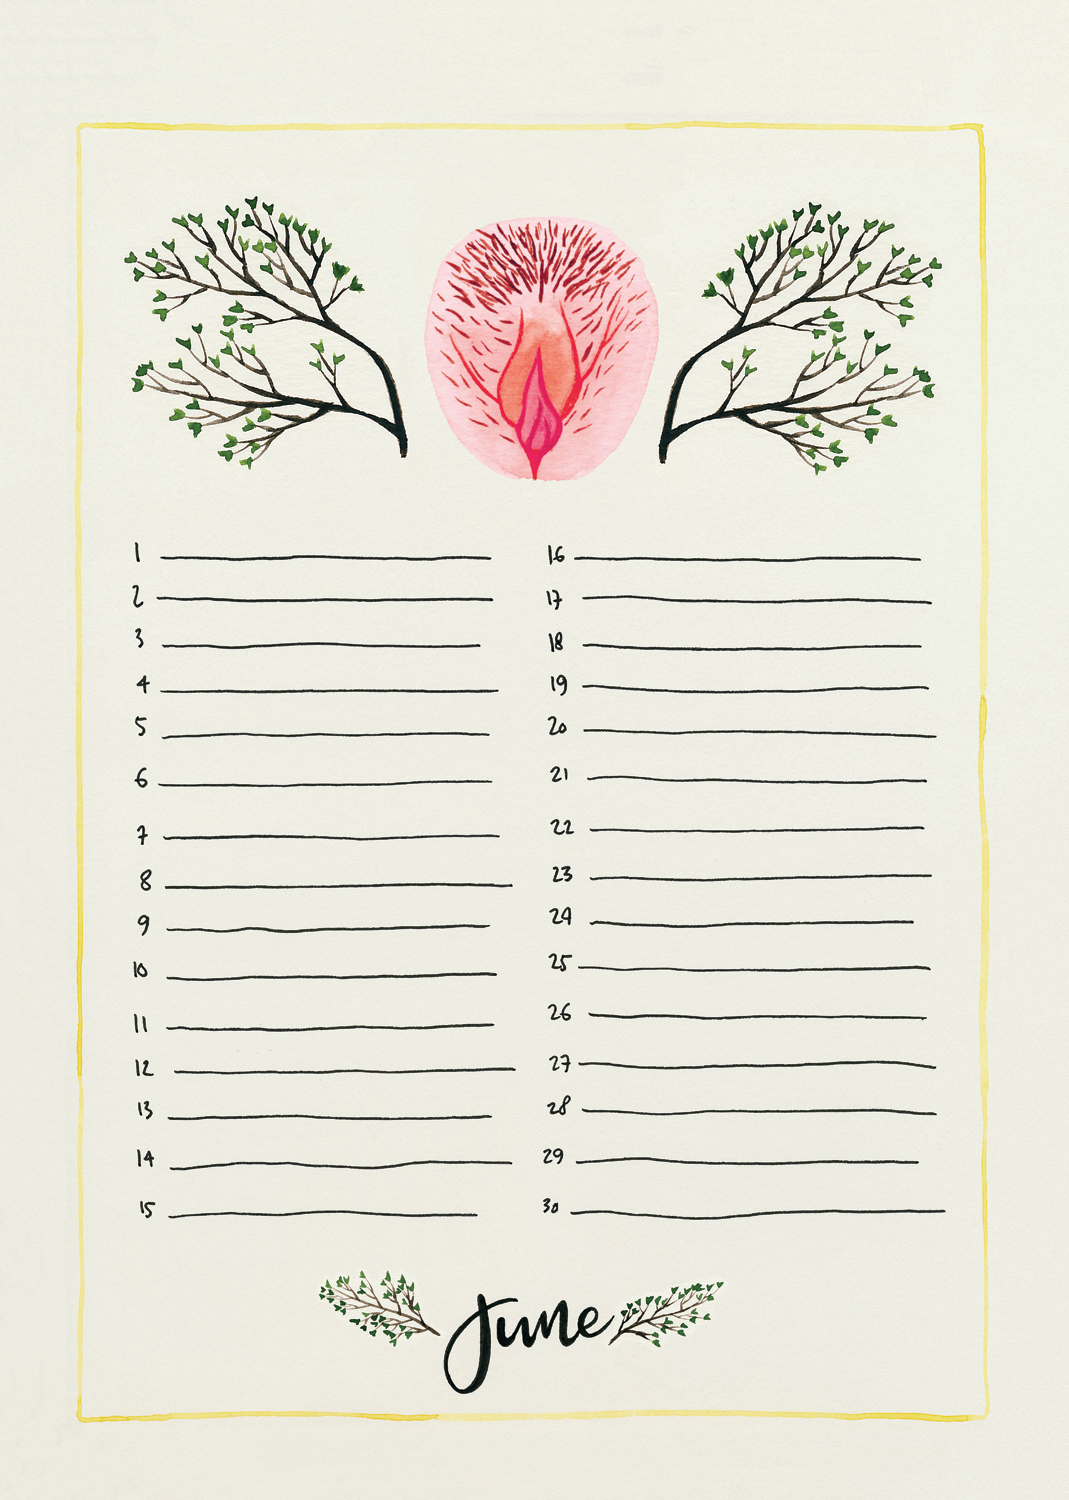 6. The Vulva Gallery Birthday Calendar June - 2018 (s).jpg